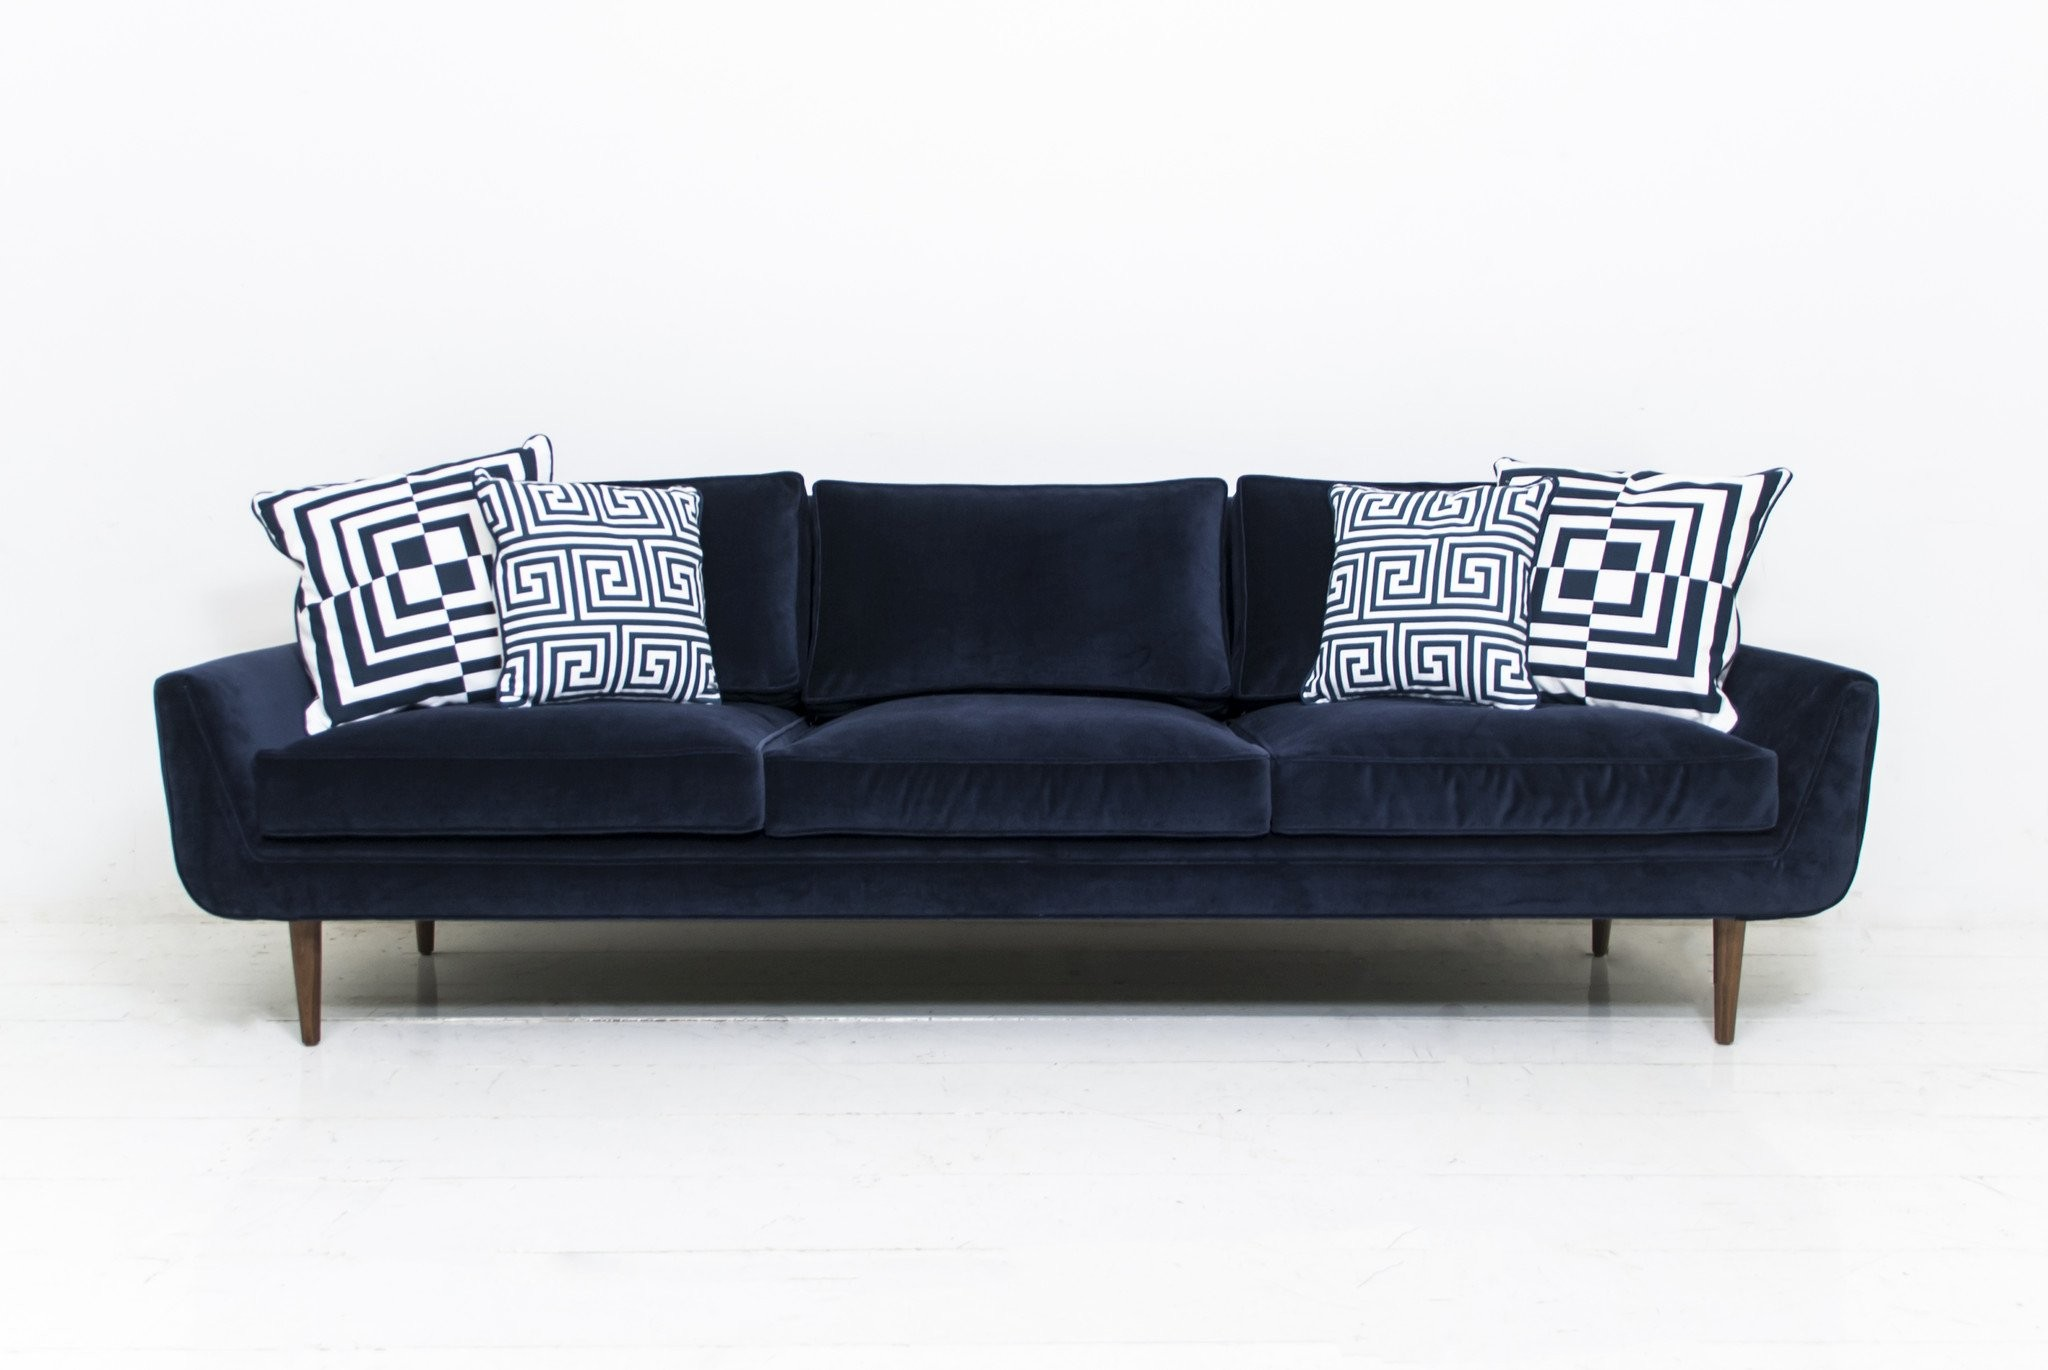 Navy Velvet sofa Wonderful Stockholm sofa In Navy Velvet Modshop Photograph